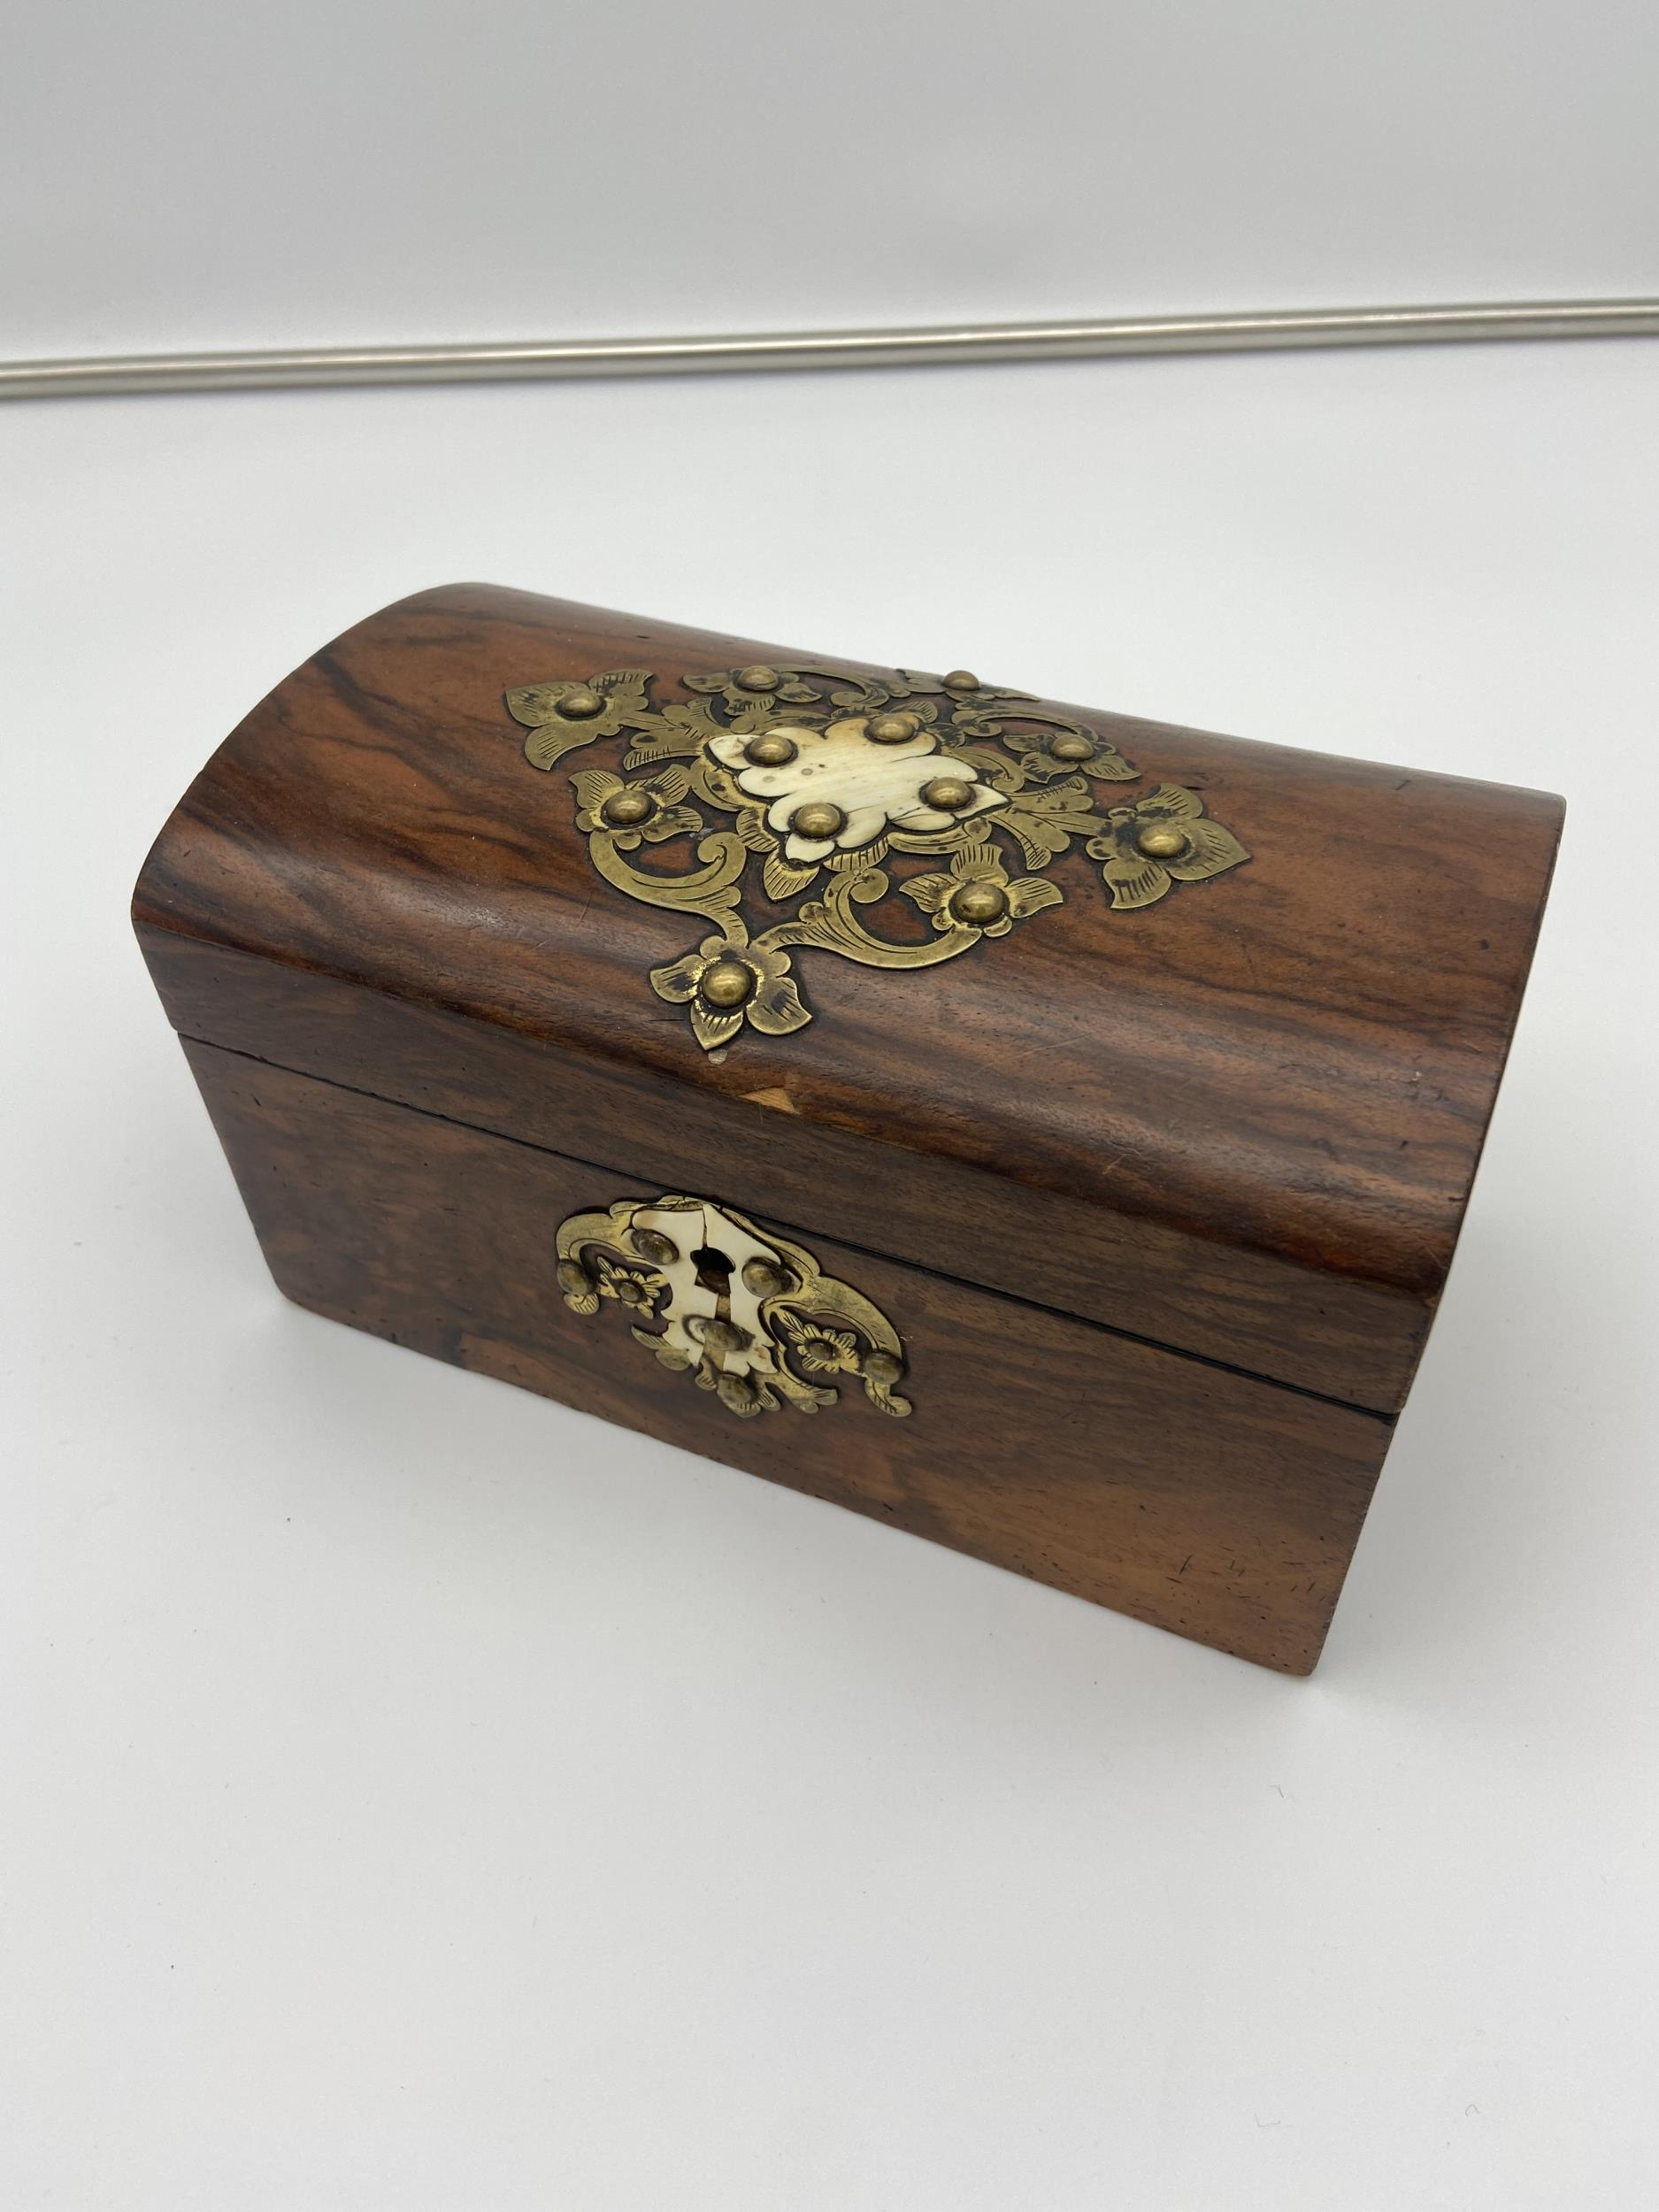 A 19th century two section tea caddy box fitted with brass mounts